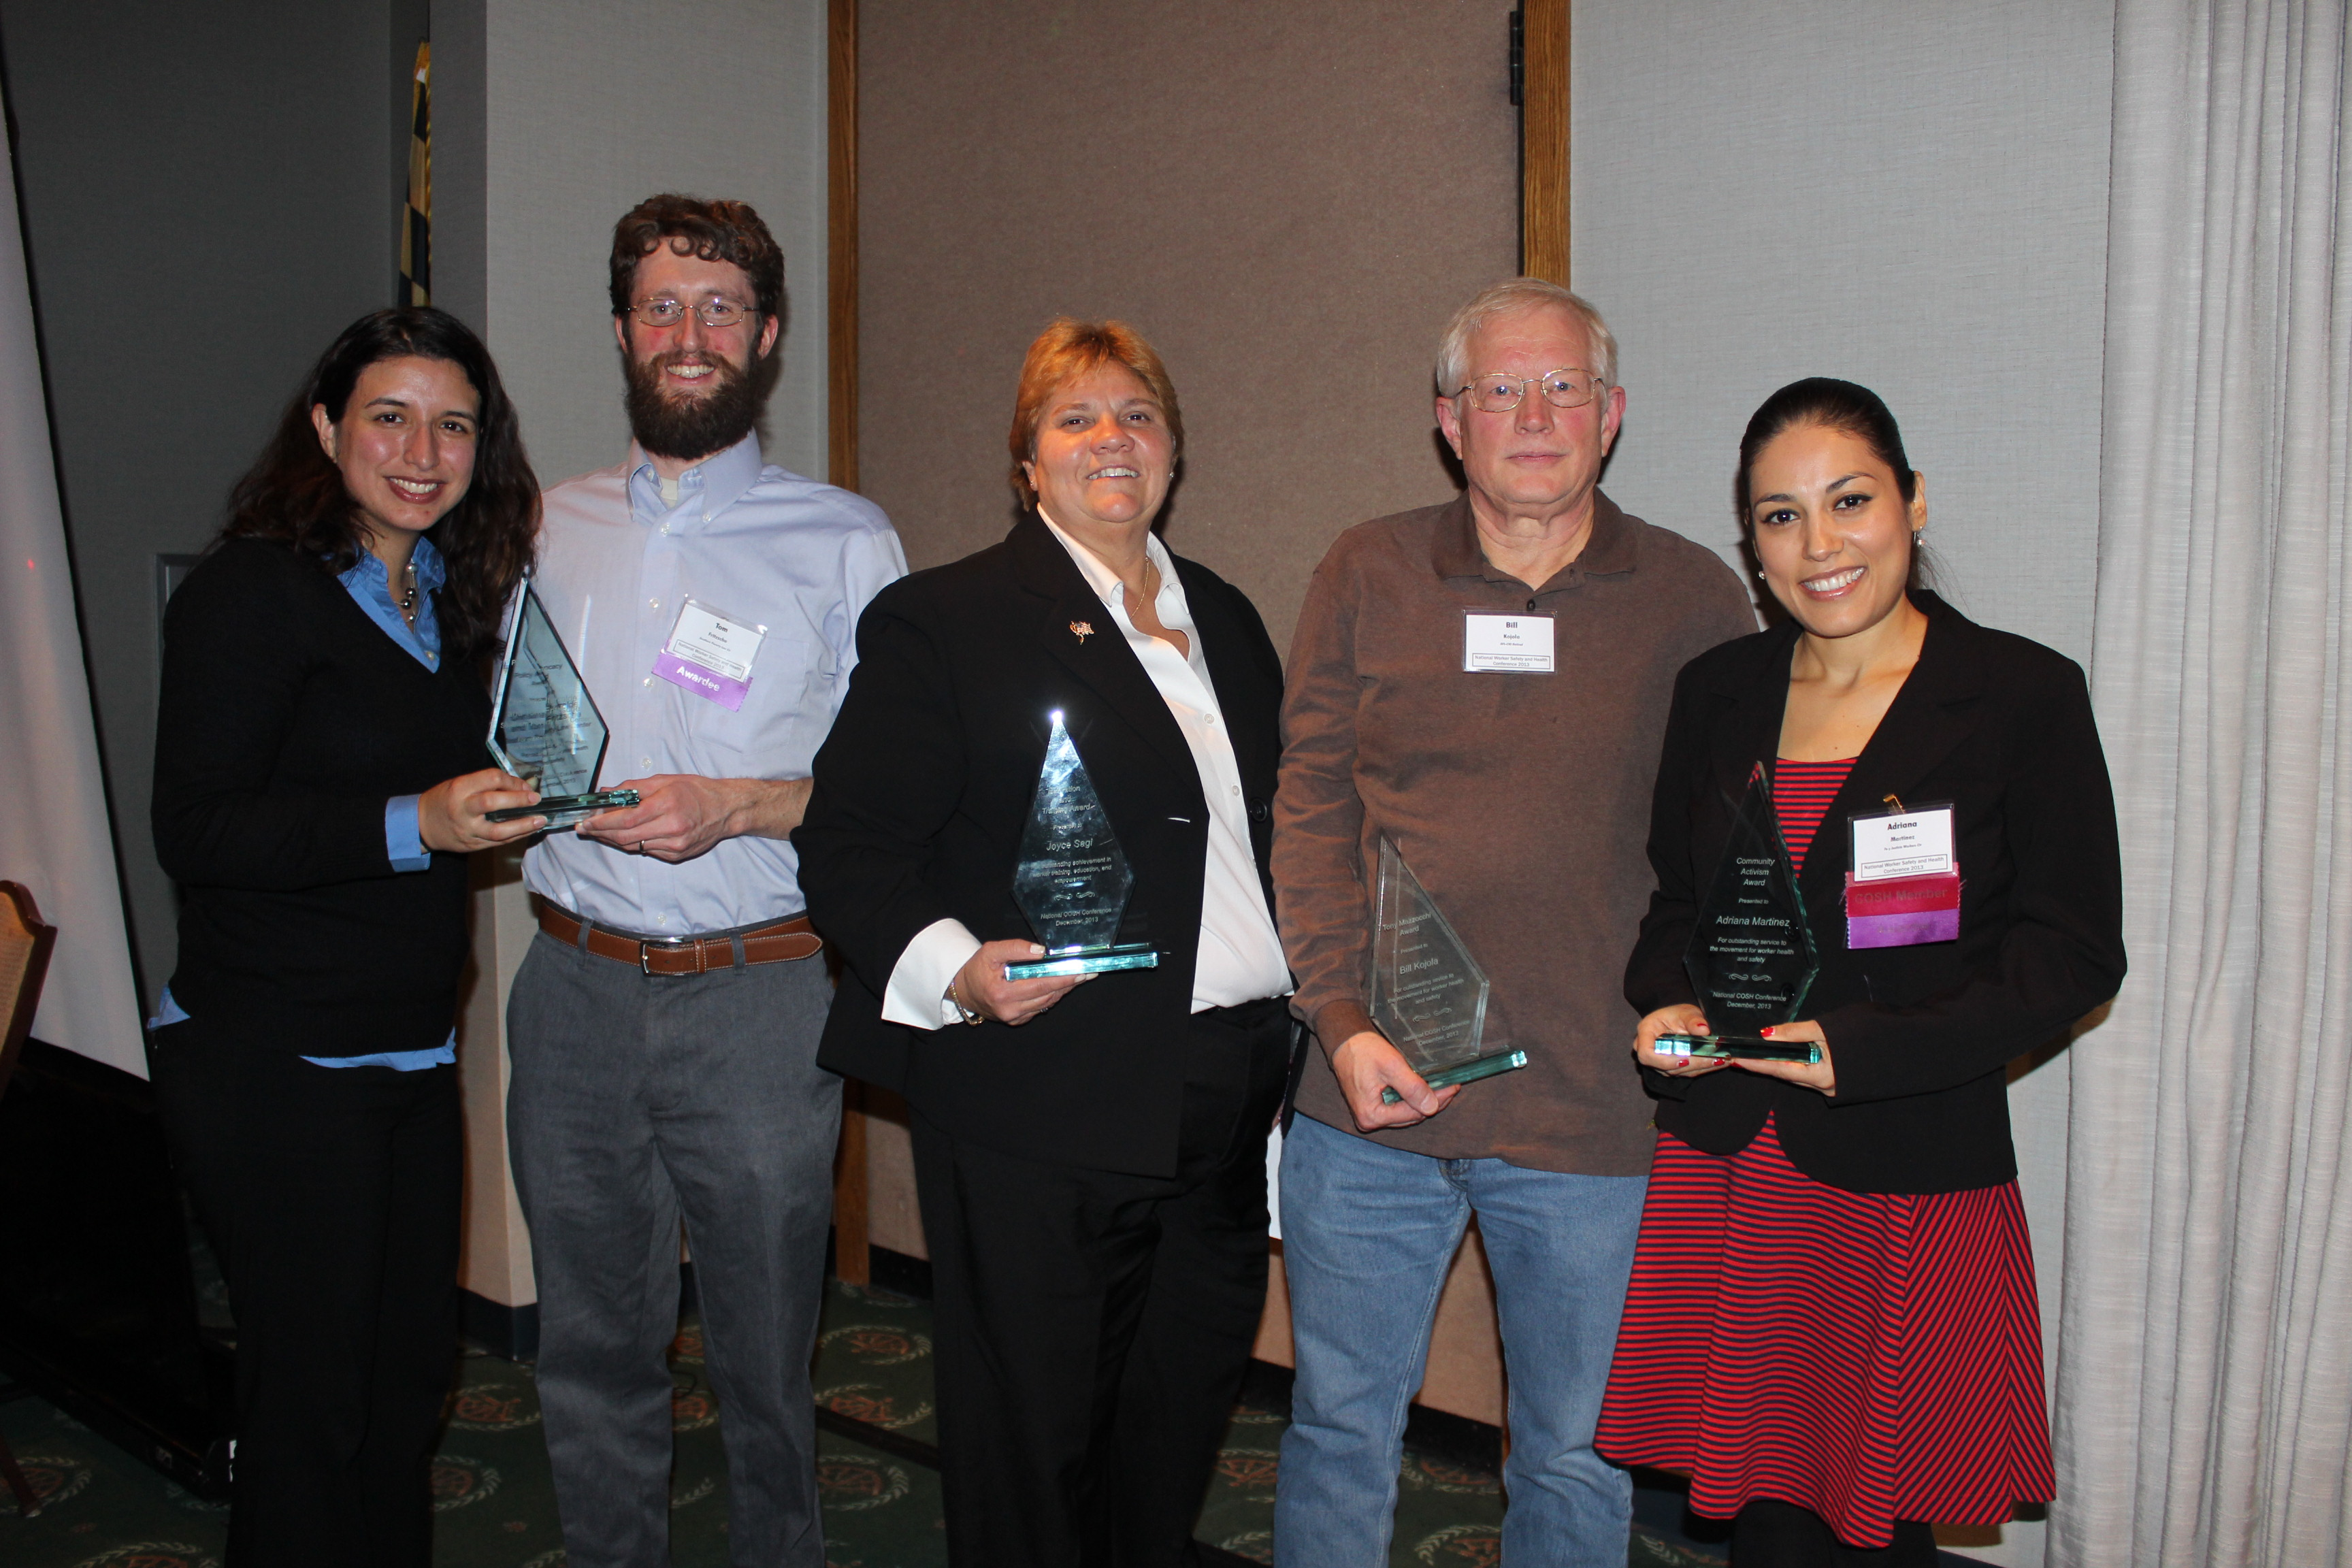 National COSH's 2013 Health and Safety Awardees